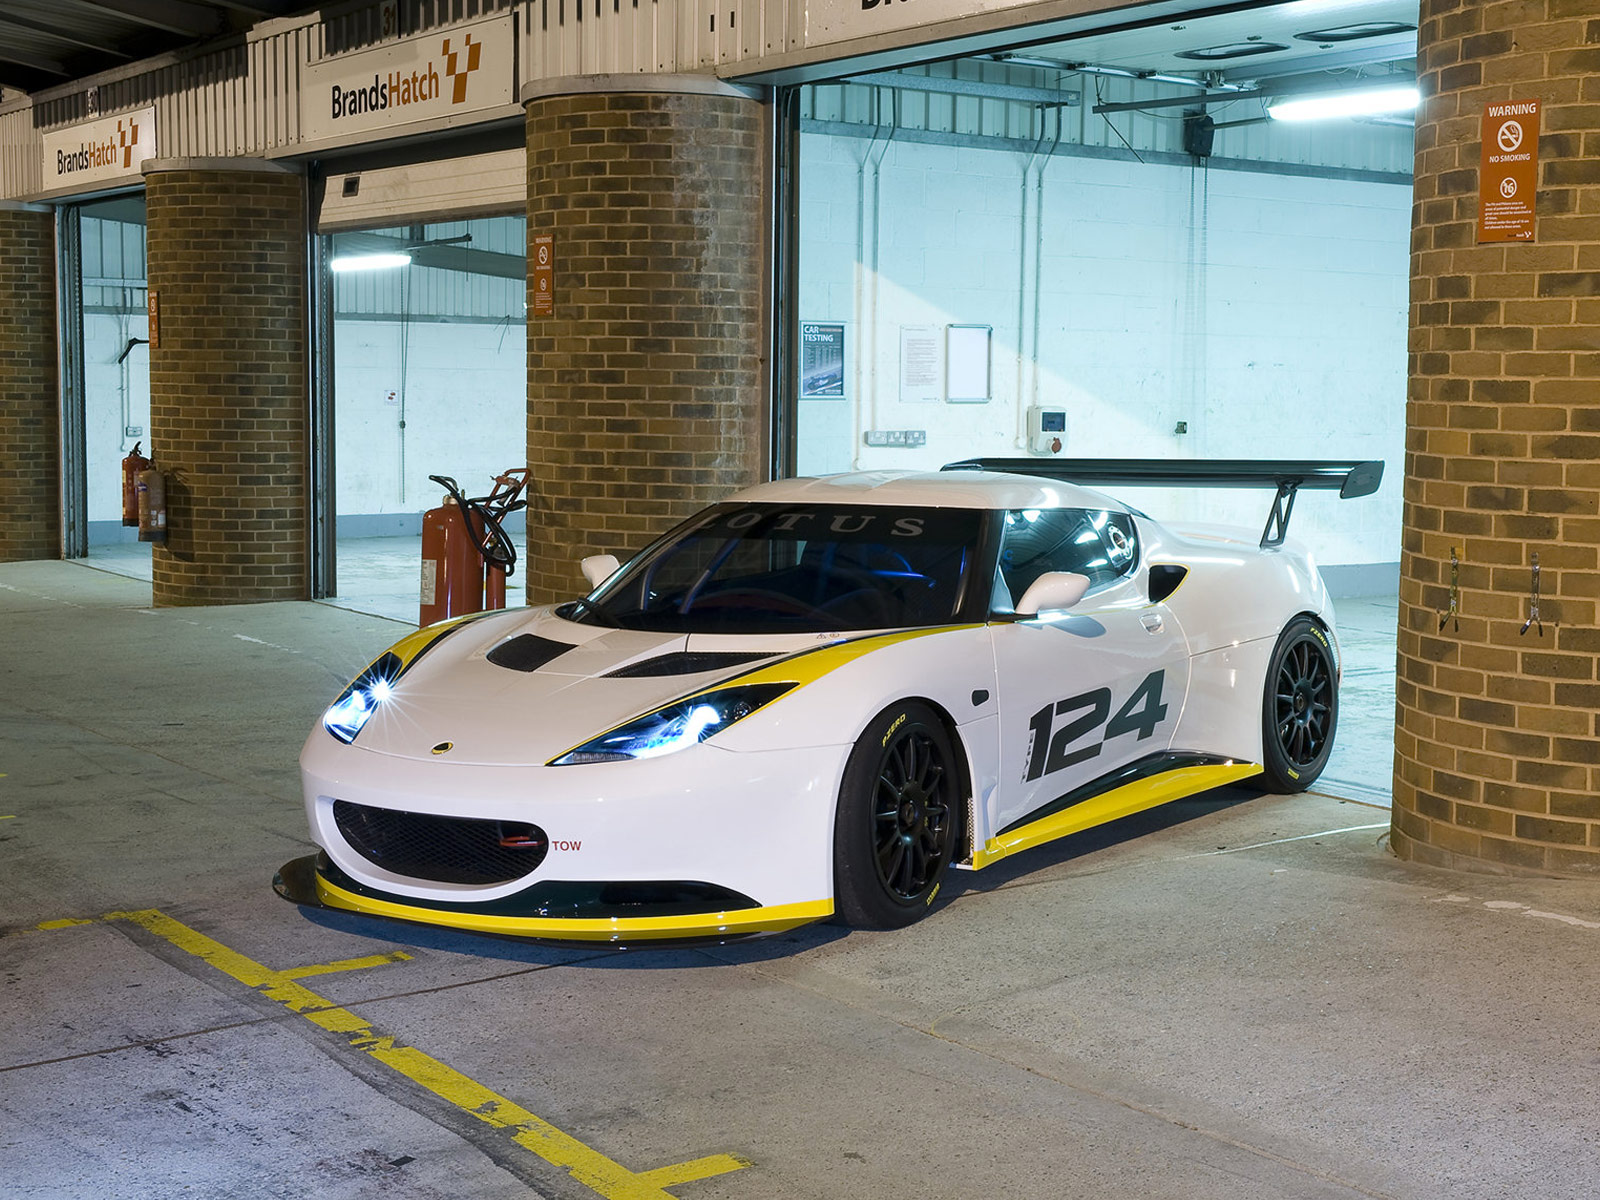 automotivegeneral: 2020 lotus evora cup race car wallpapers